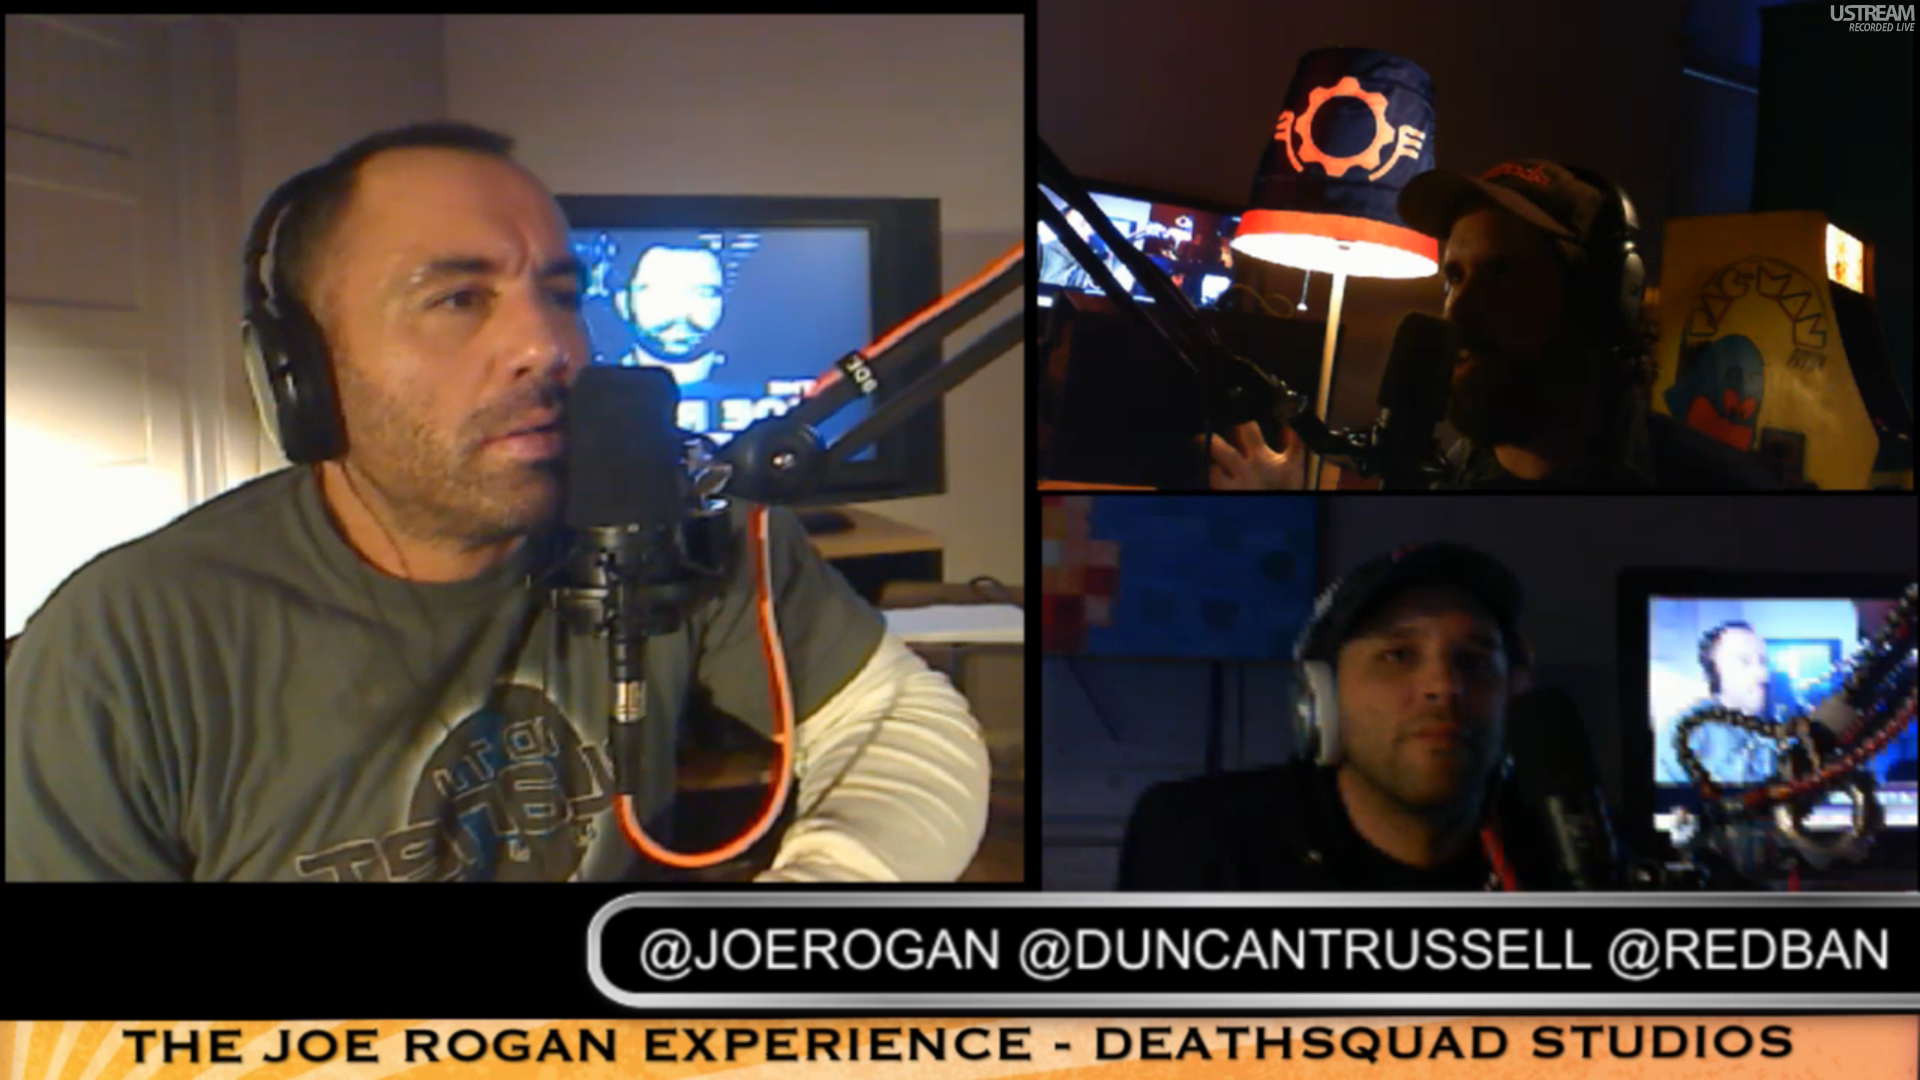 The Joe Rogan Experience PODCAST #156 - Duncan Trussell, Brian Redban